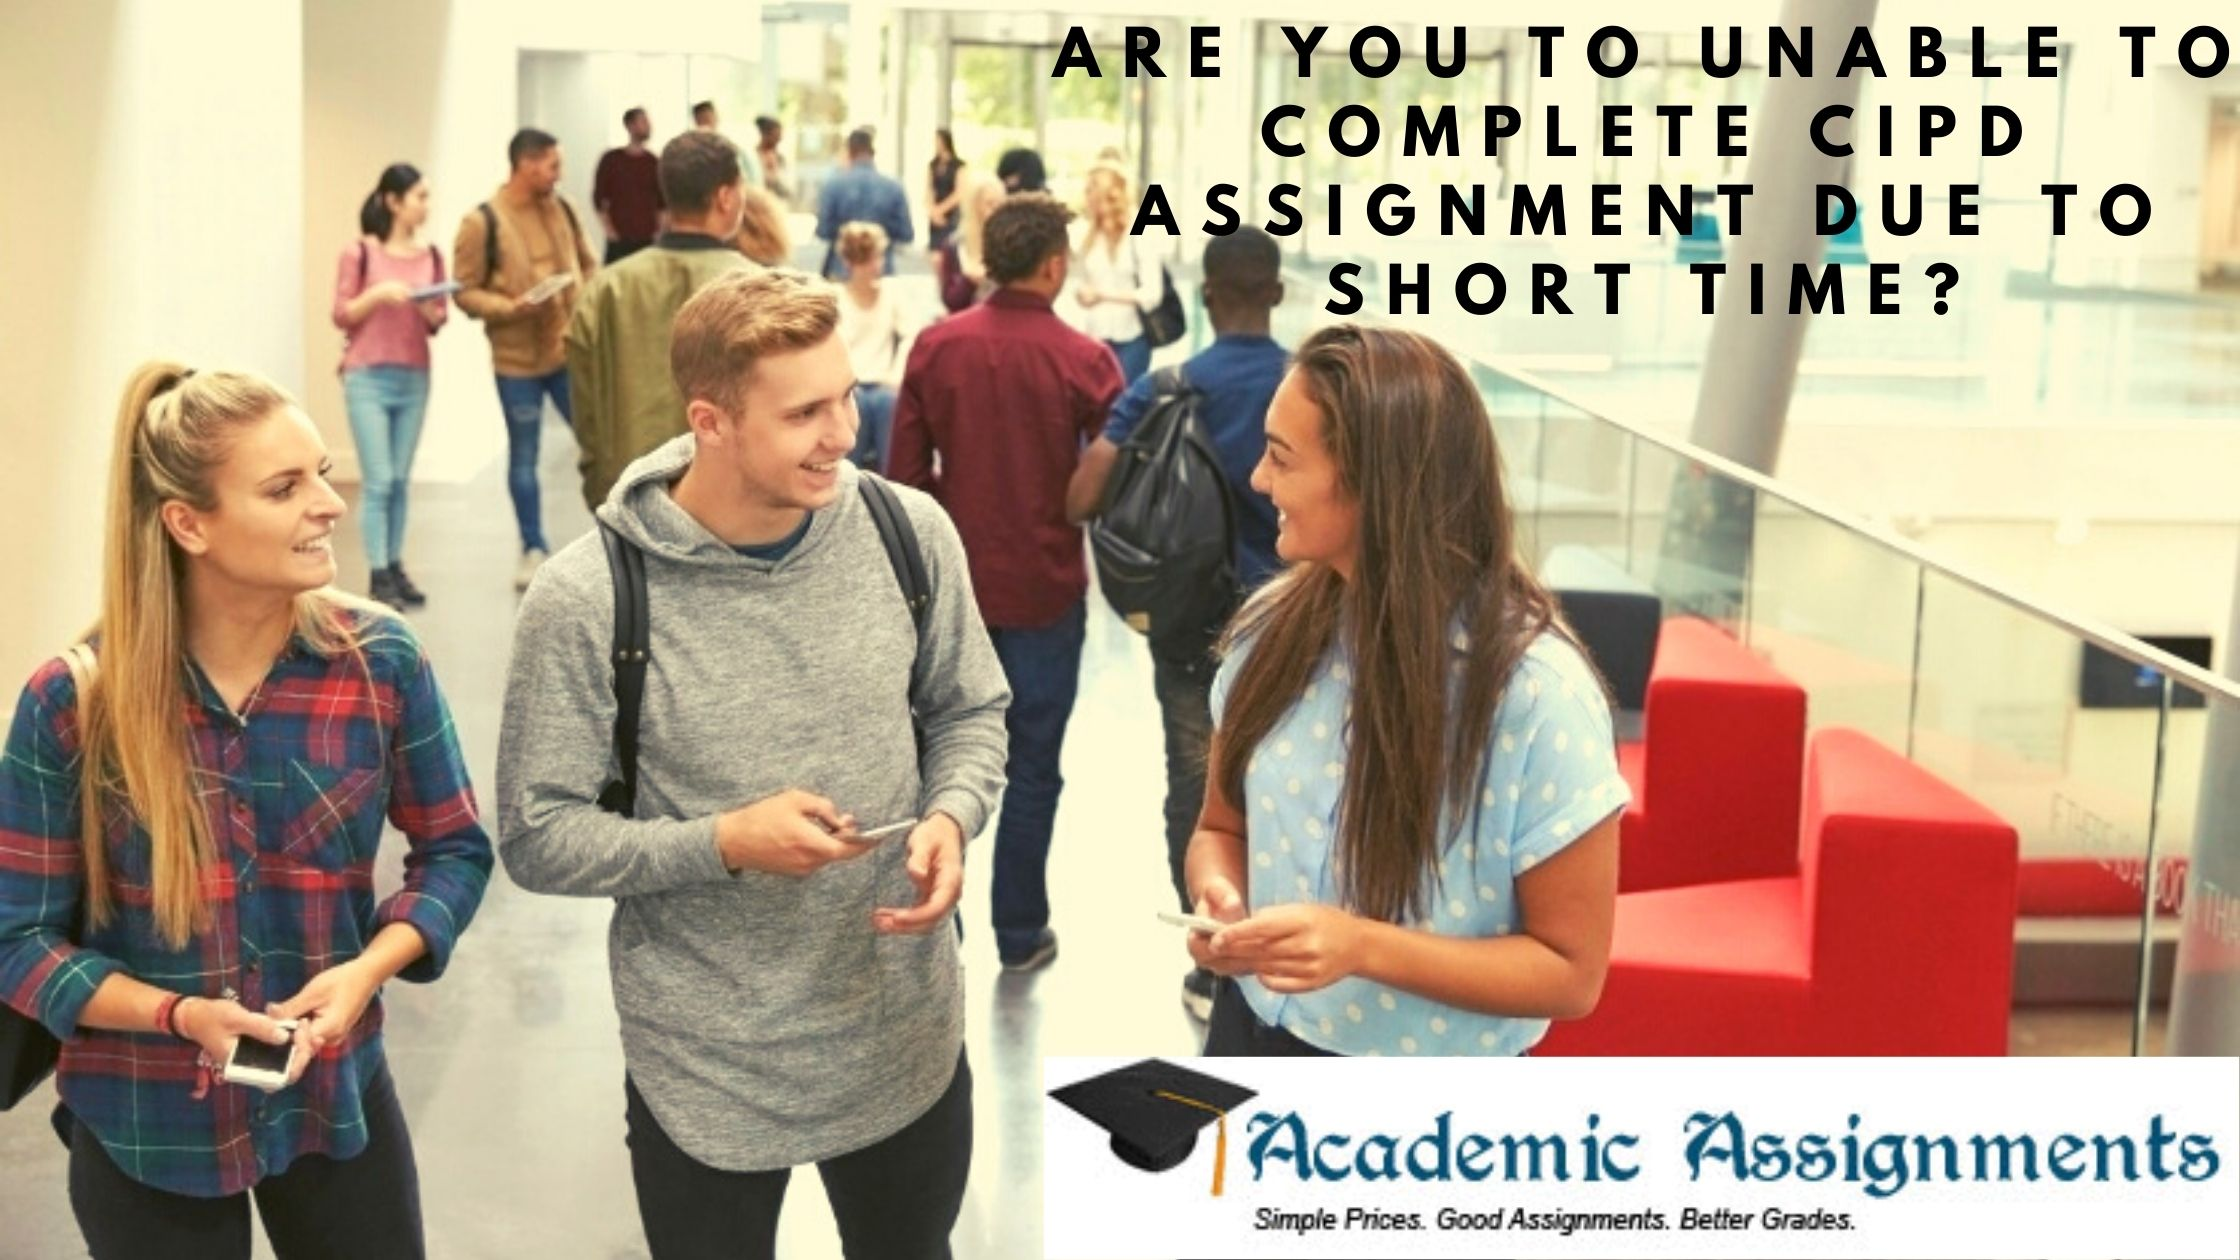 Are You To Unable To Complete CIPD Assignment Due To Short Time_